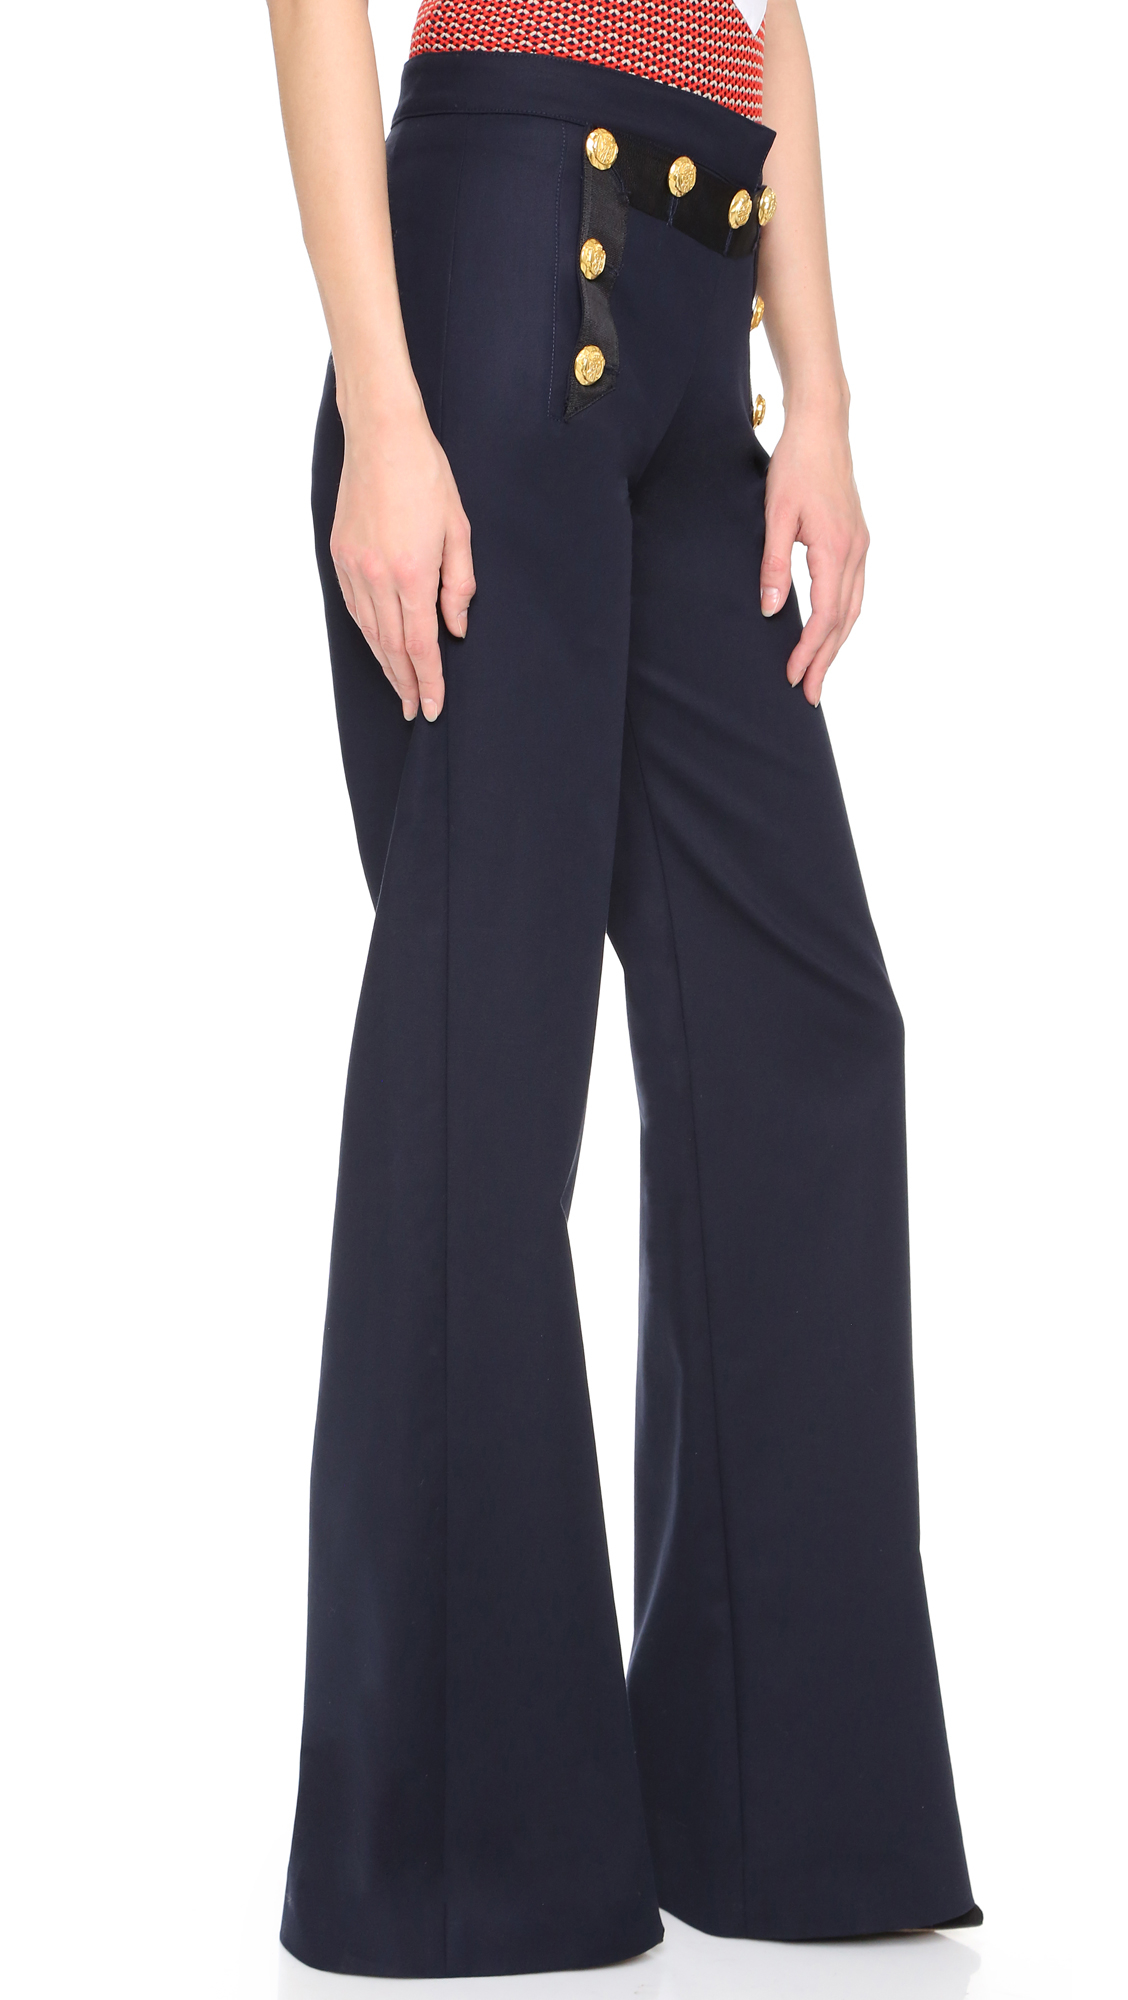 Veronica beard Tide Line Wide Leg Sailor Pants - Navy in Blue | Lyst